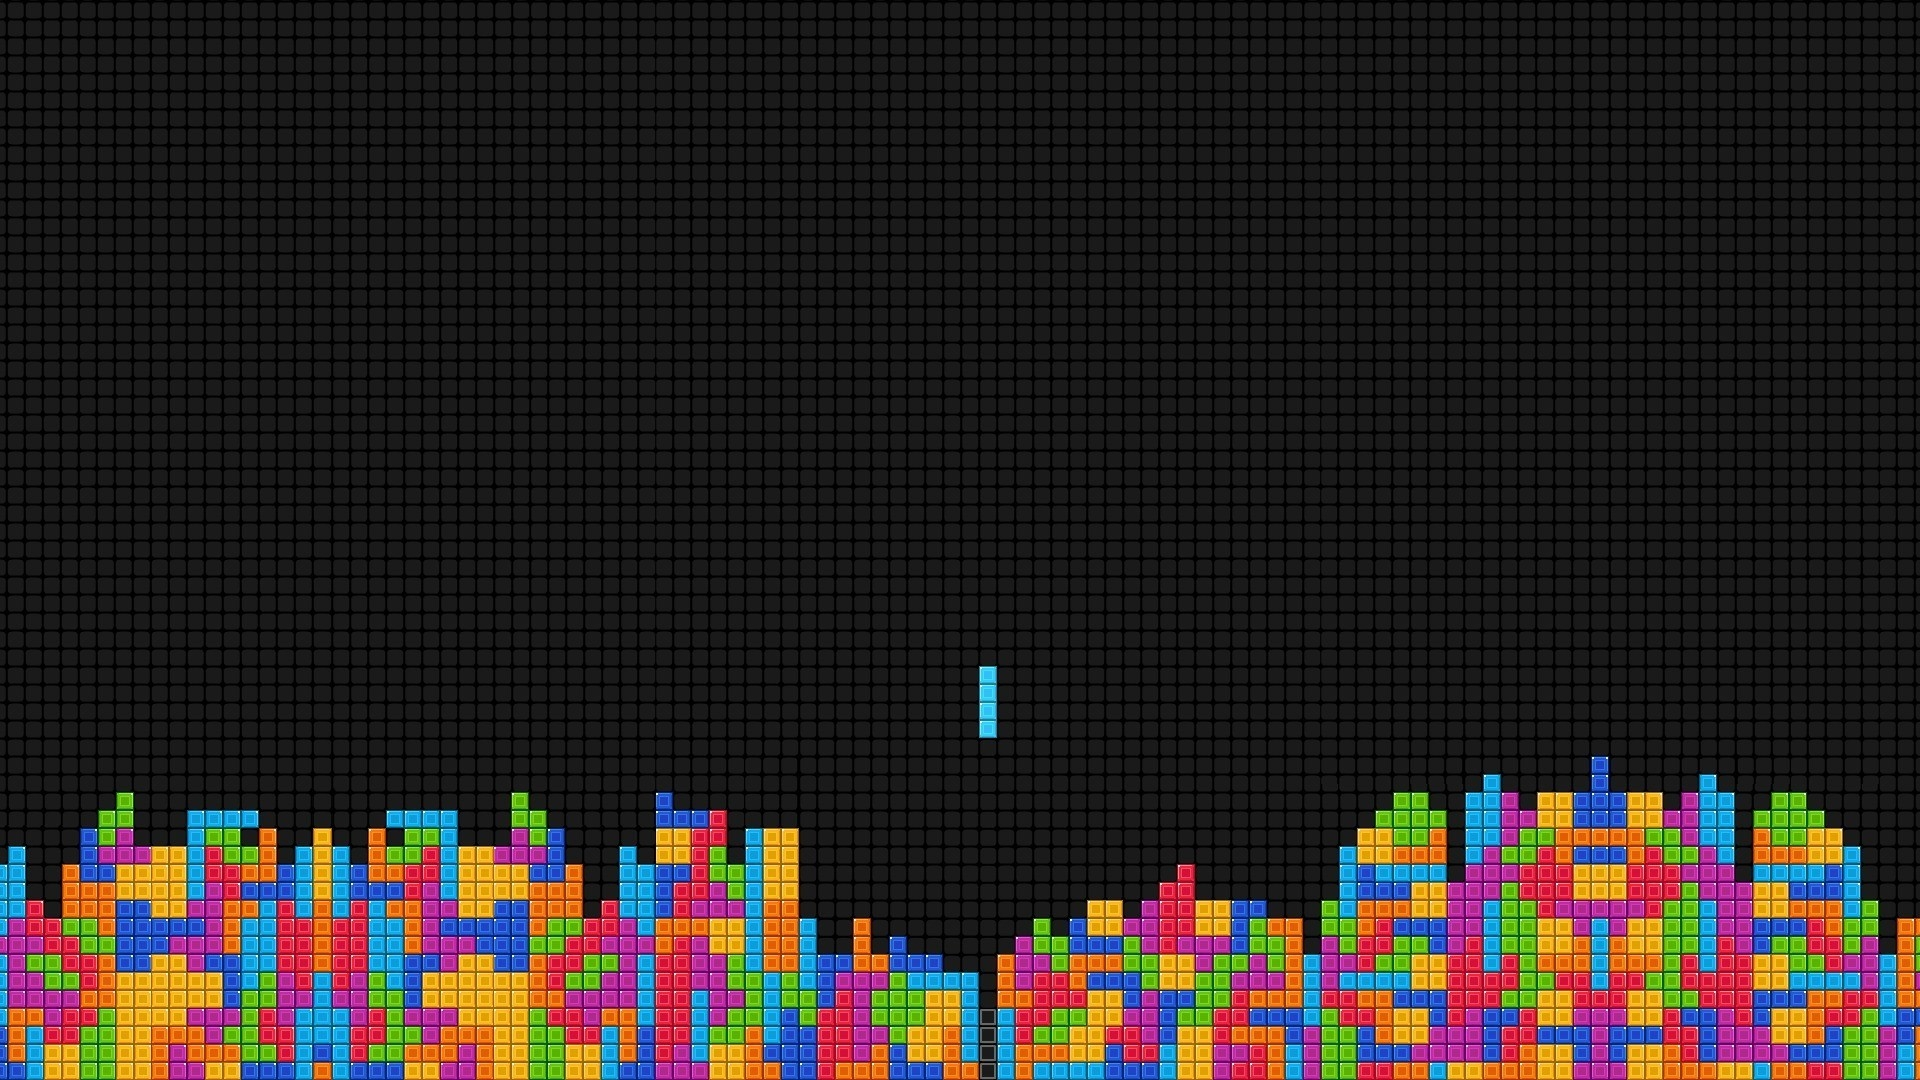 Get The Latest Background Texture Tetris News Pictures And Videos Learn All About From Wallpapers4uorg Your Wallpaper